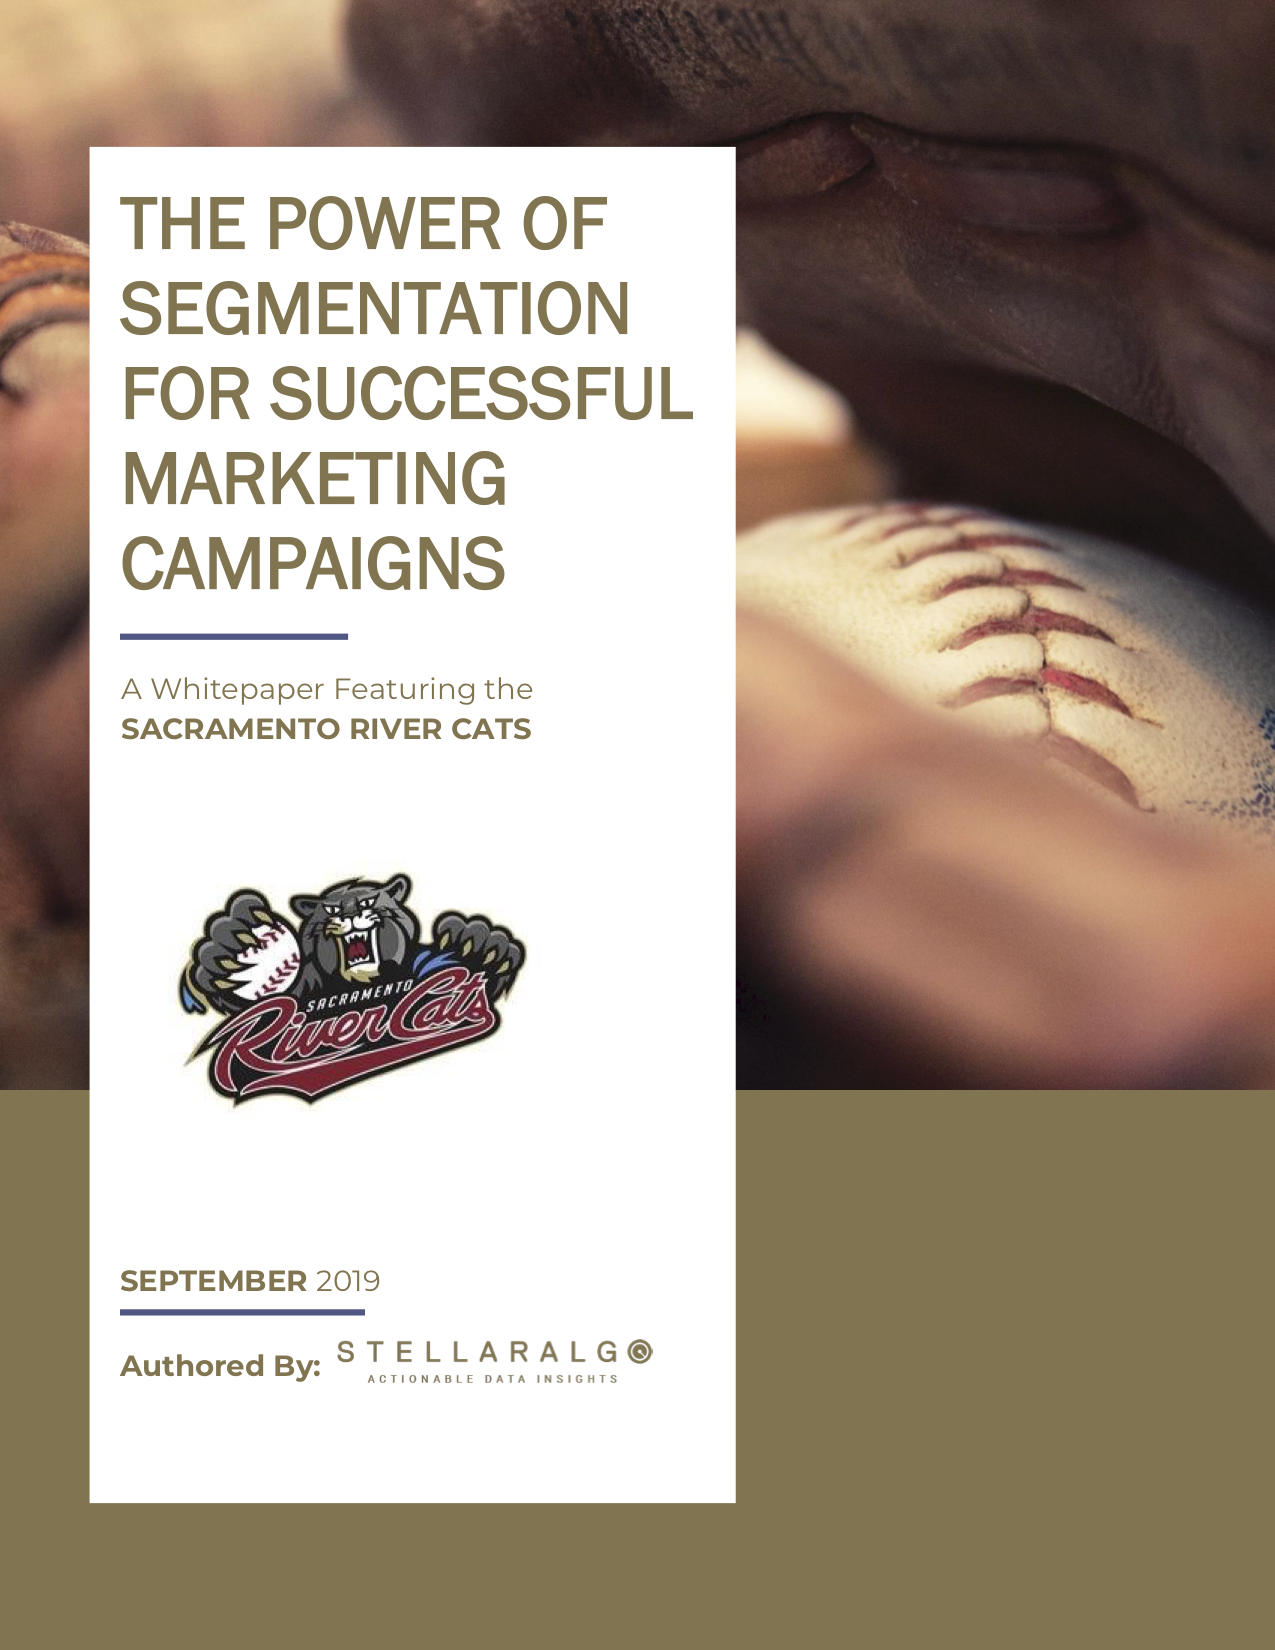 StellarAlgo - The Power of Segmentation for Successful Marketing Campaigns-Graphic.png